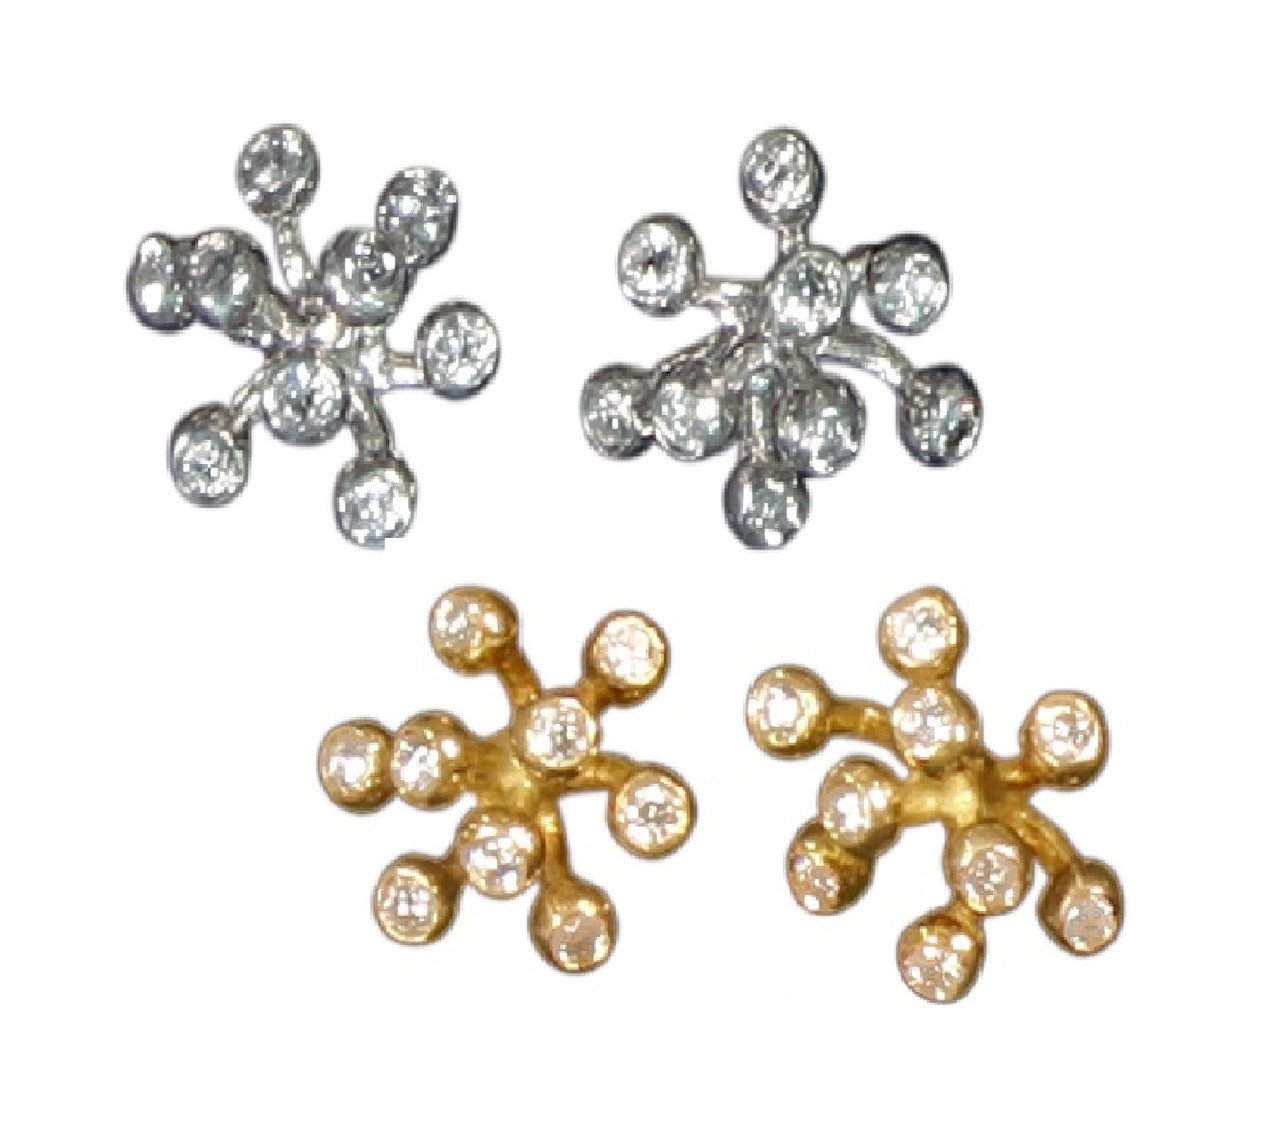 Fireworks Earrings- 9 diamonds in each ear- shown here in silver and gold.